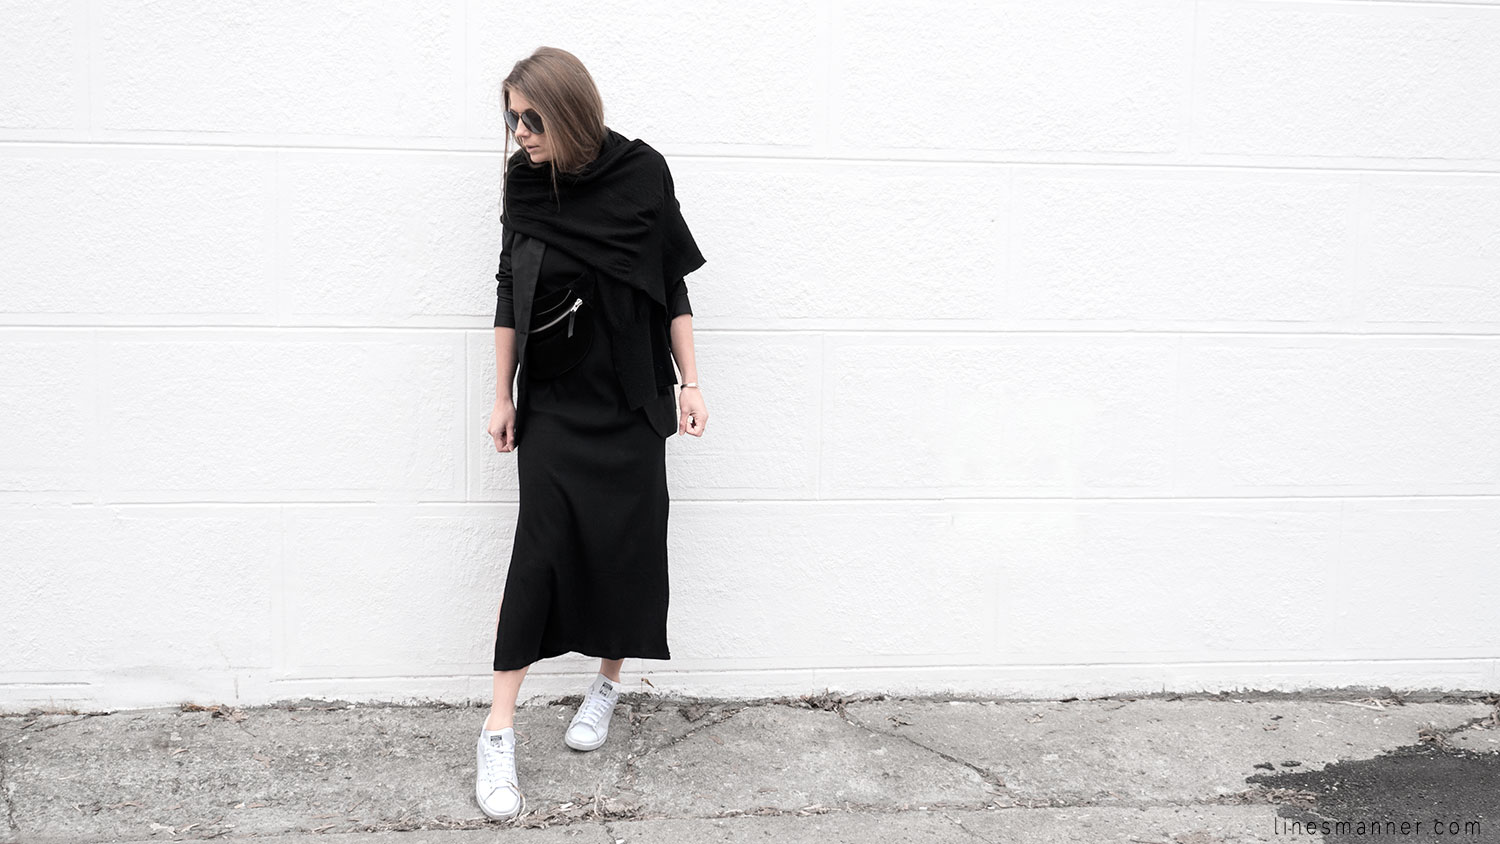 Lines-Manner-Black-Relaxed-Tone_on_Tone-Monochrome-Minimal-Sophistication-Comfort-Modern-Simplicity-Casual-Sporty_Luxe-Slit_Dress-Thrid_Form-Blazer-Essentials-Details-Basics-Timeless-Verstatile-Staple-Wardrobe-Sleek-Clean_Lines-All_Black_Everything-2